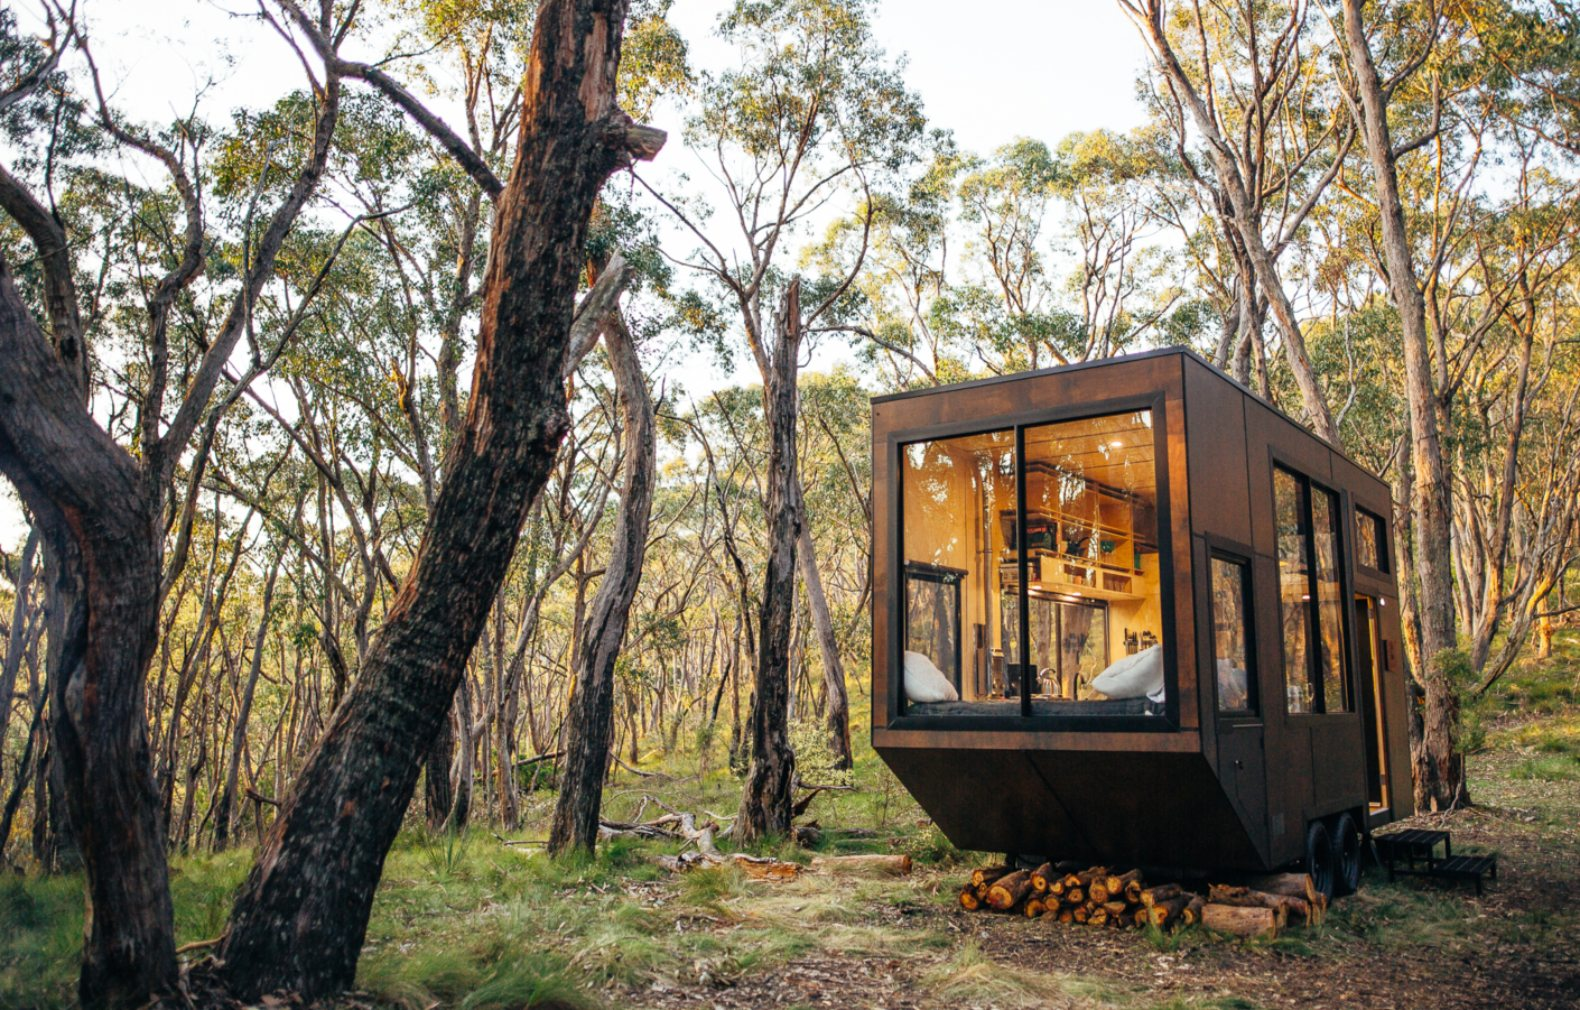 These Australian tiny cabins are designed to help us disconnect